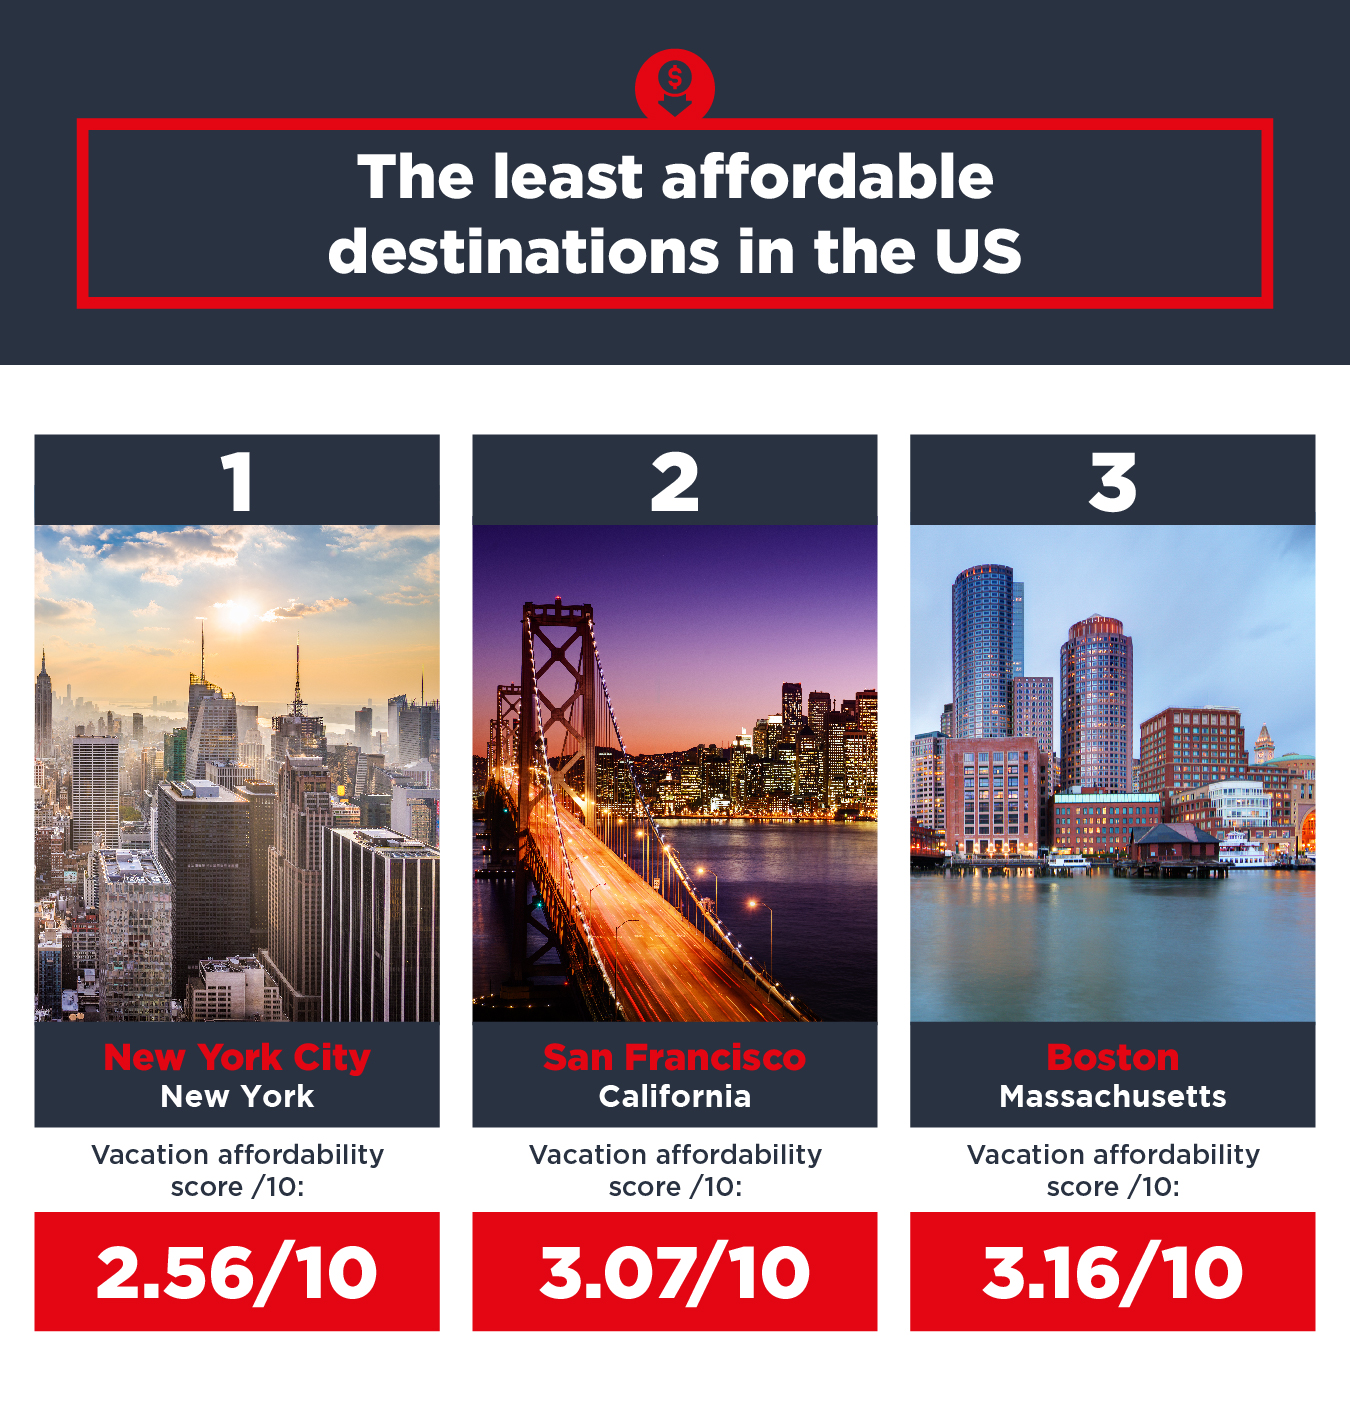 Least affordable destinations in the US